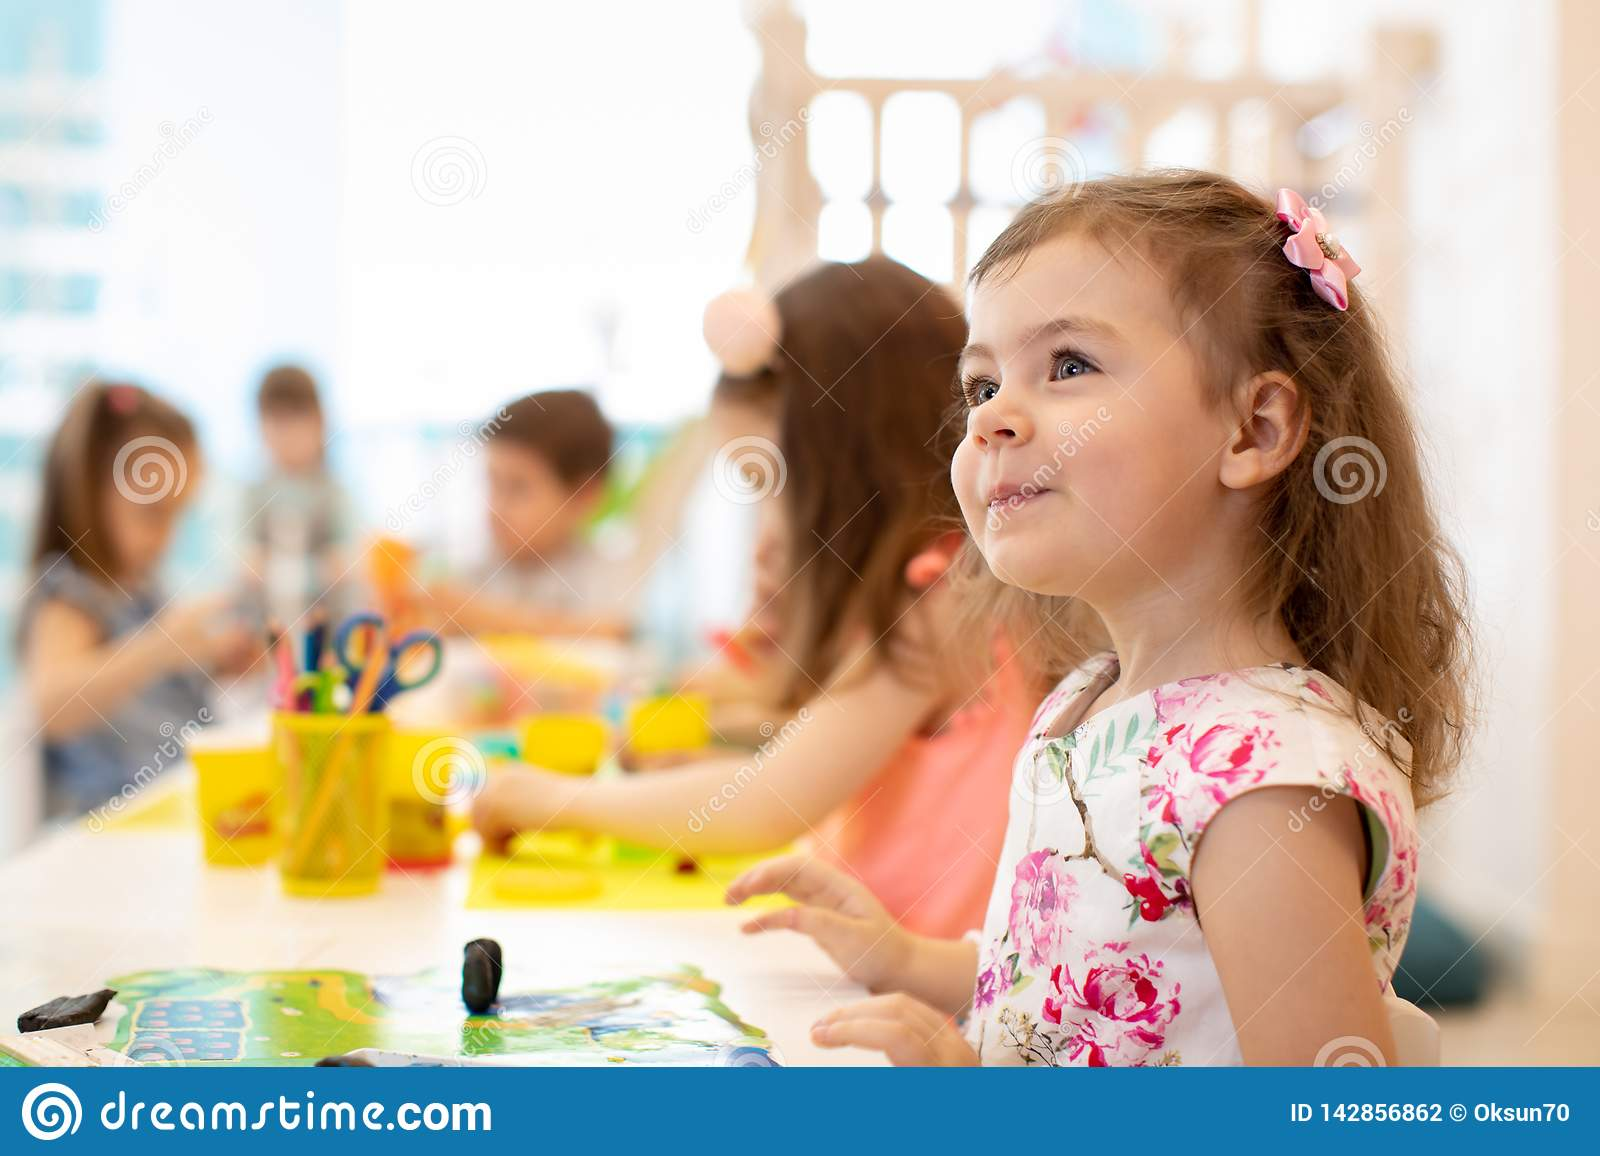 Group of preschool children engaged in drawing and crafts